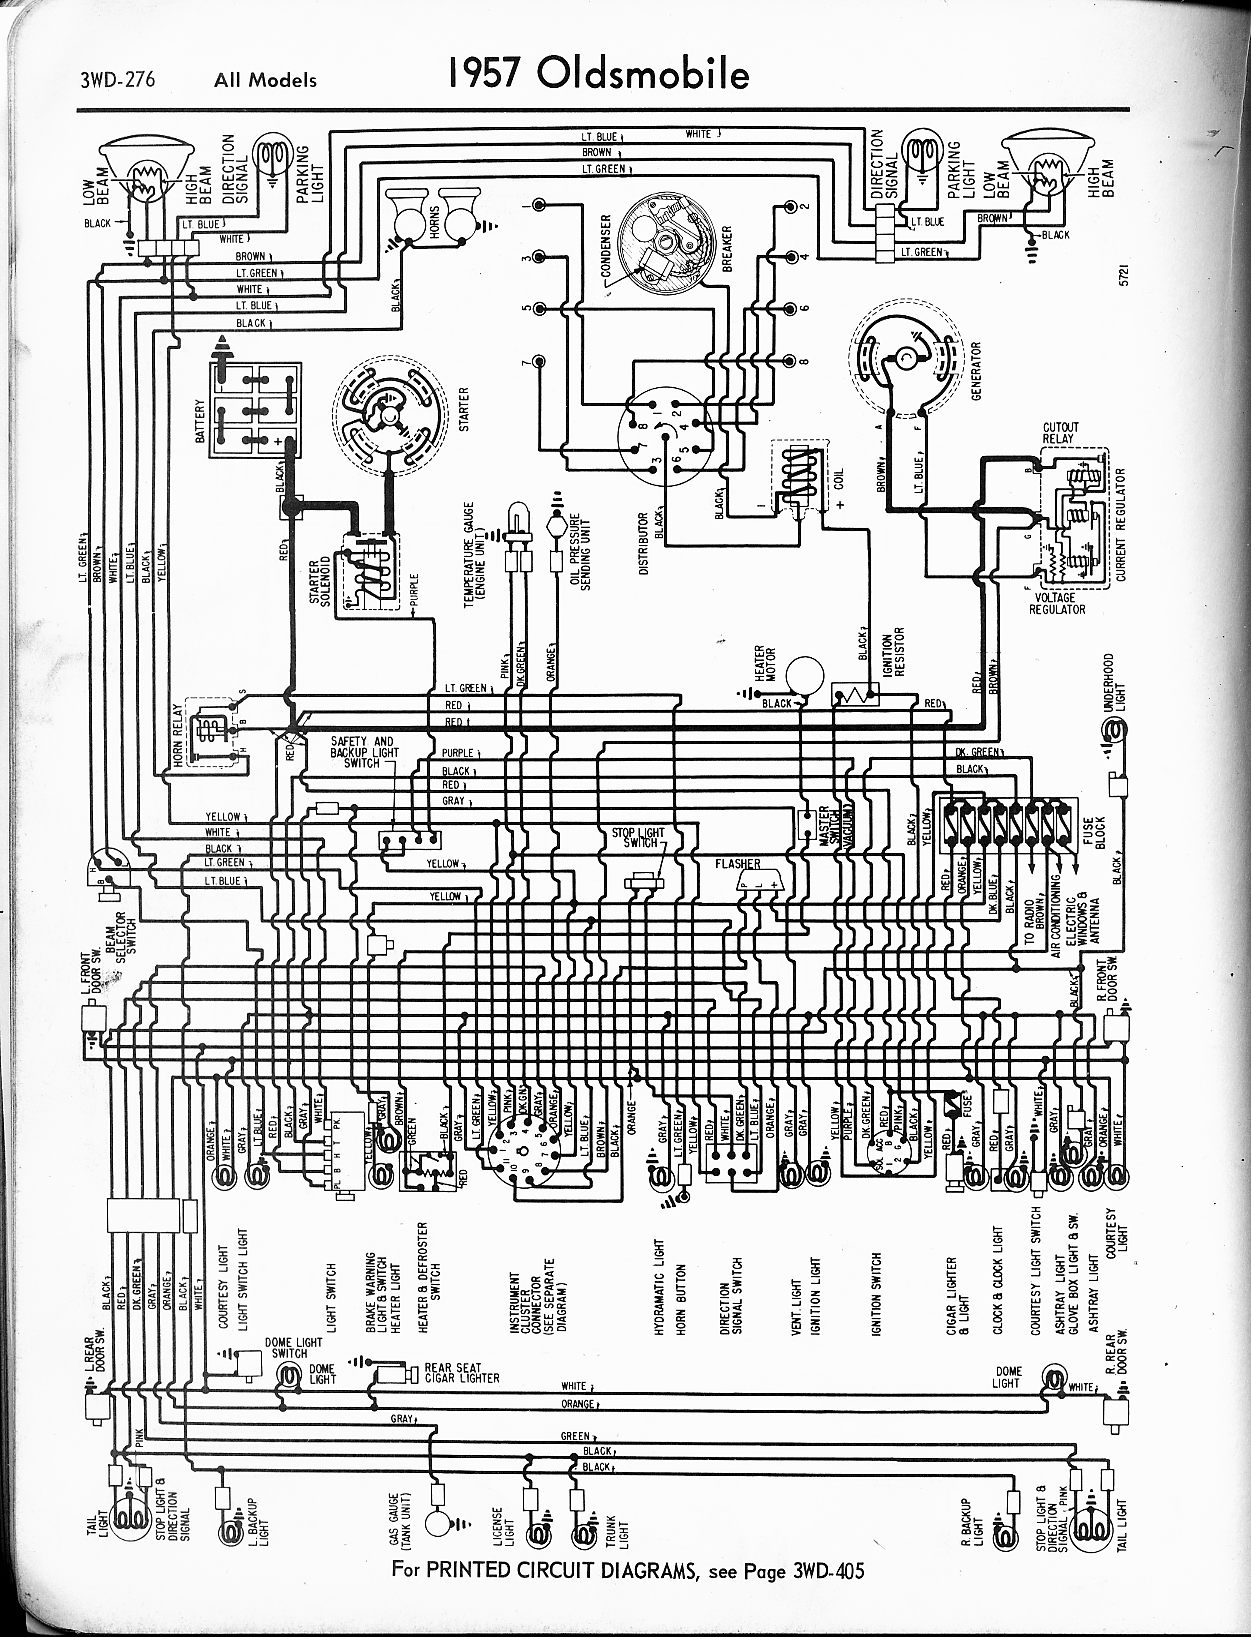 oldsmobile wiring diagrams the old car manual project rh oldcarmanualproject com 2002 Oldsmobile Intrigue 2000 Oldsmobile Intrigue